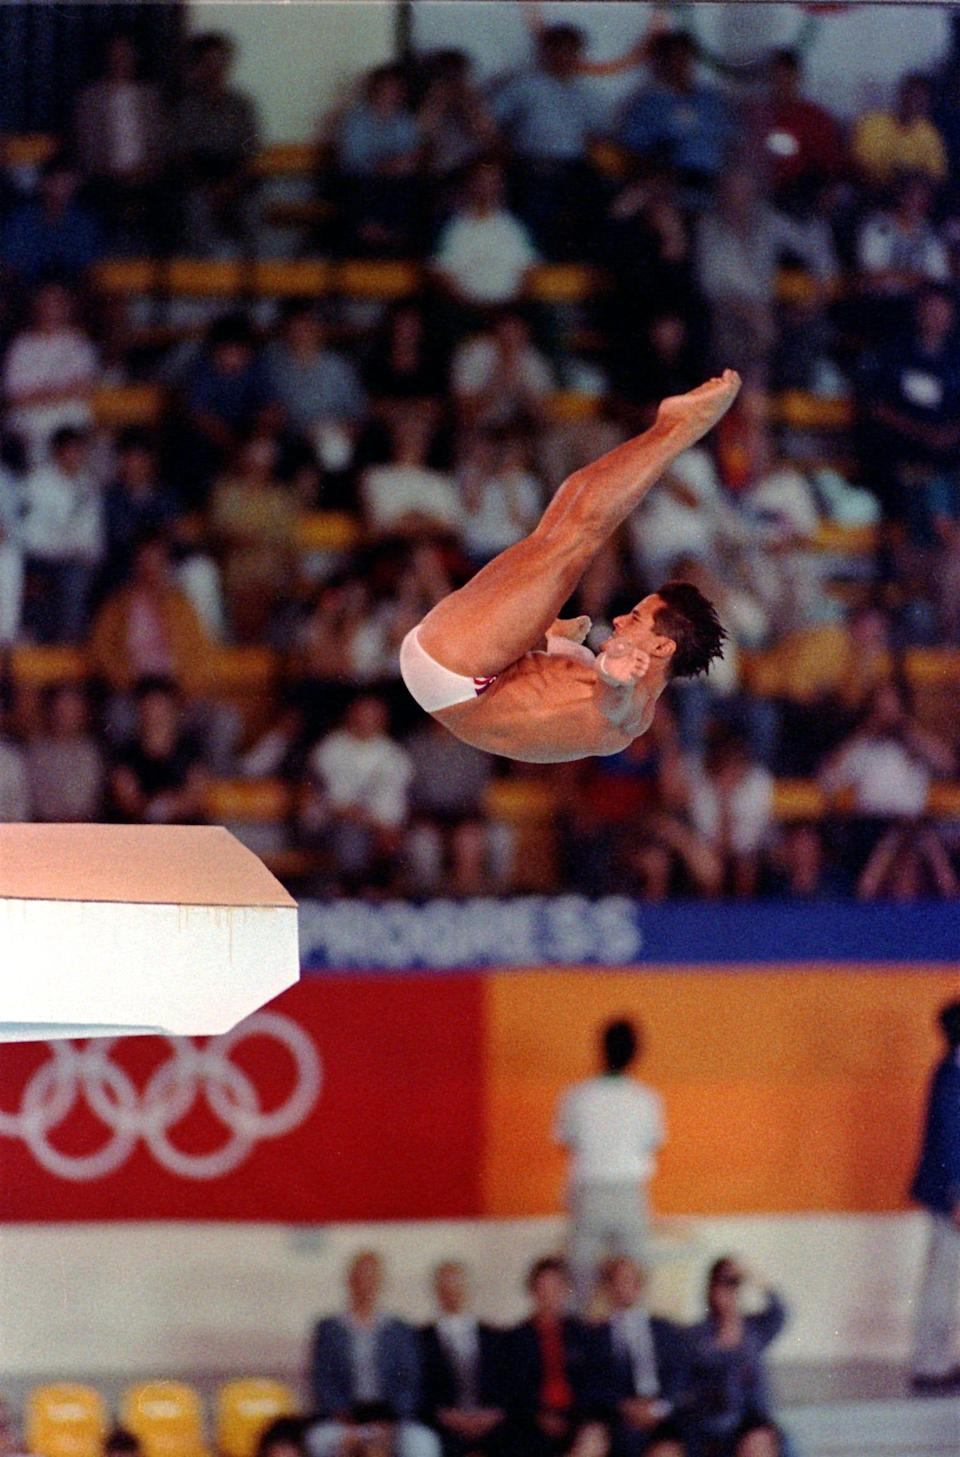 Greg Louganis, diving. Olympics: 1976, 1984, 1988. Medals: 5 (4 gold, 1 silver). Louganis, who was both a springboard and platform diver, is the only man from any country to win four gold medals in diving.